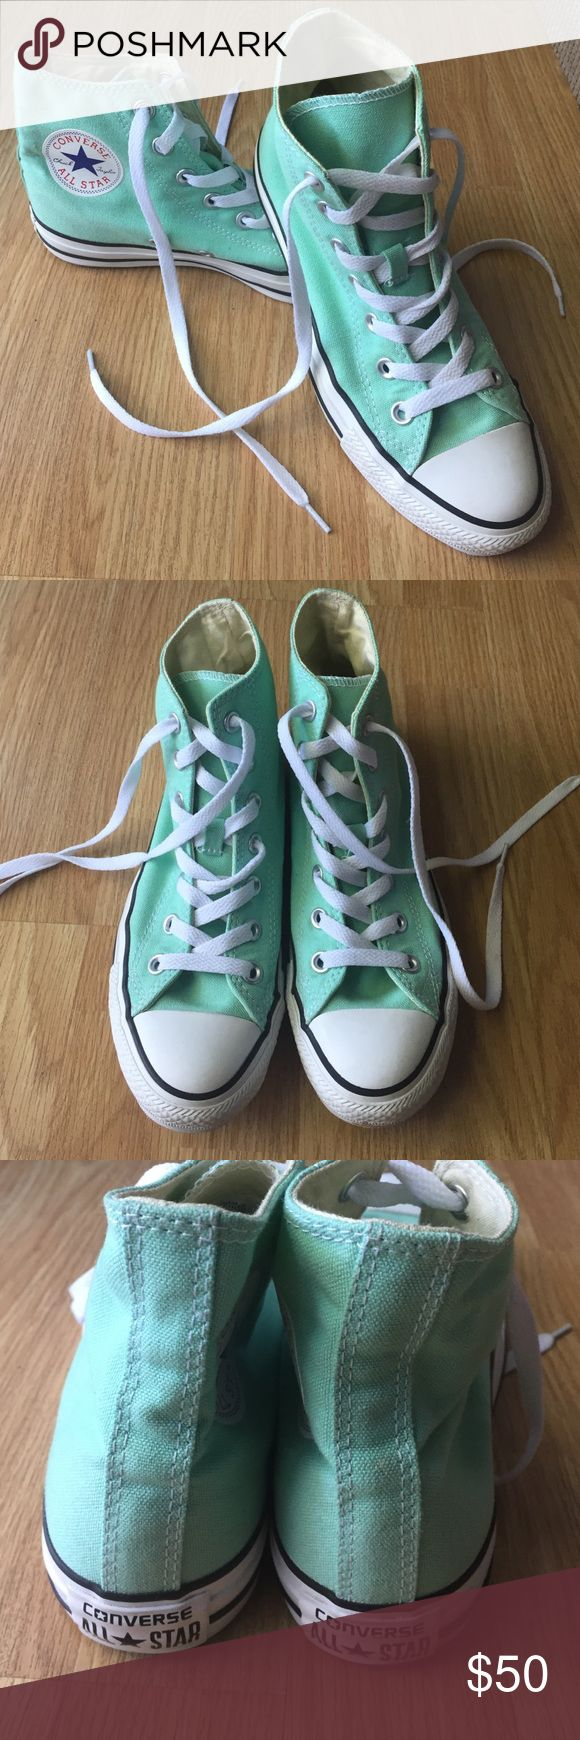 Converse Chuck Taylor Hi Tops in Mint Green Worn only a handful of times. No flaws. Size 5 men's, 7 women's. Converse Shoes Sneakers